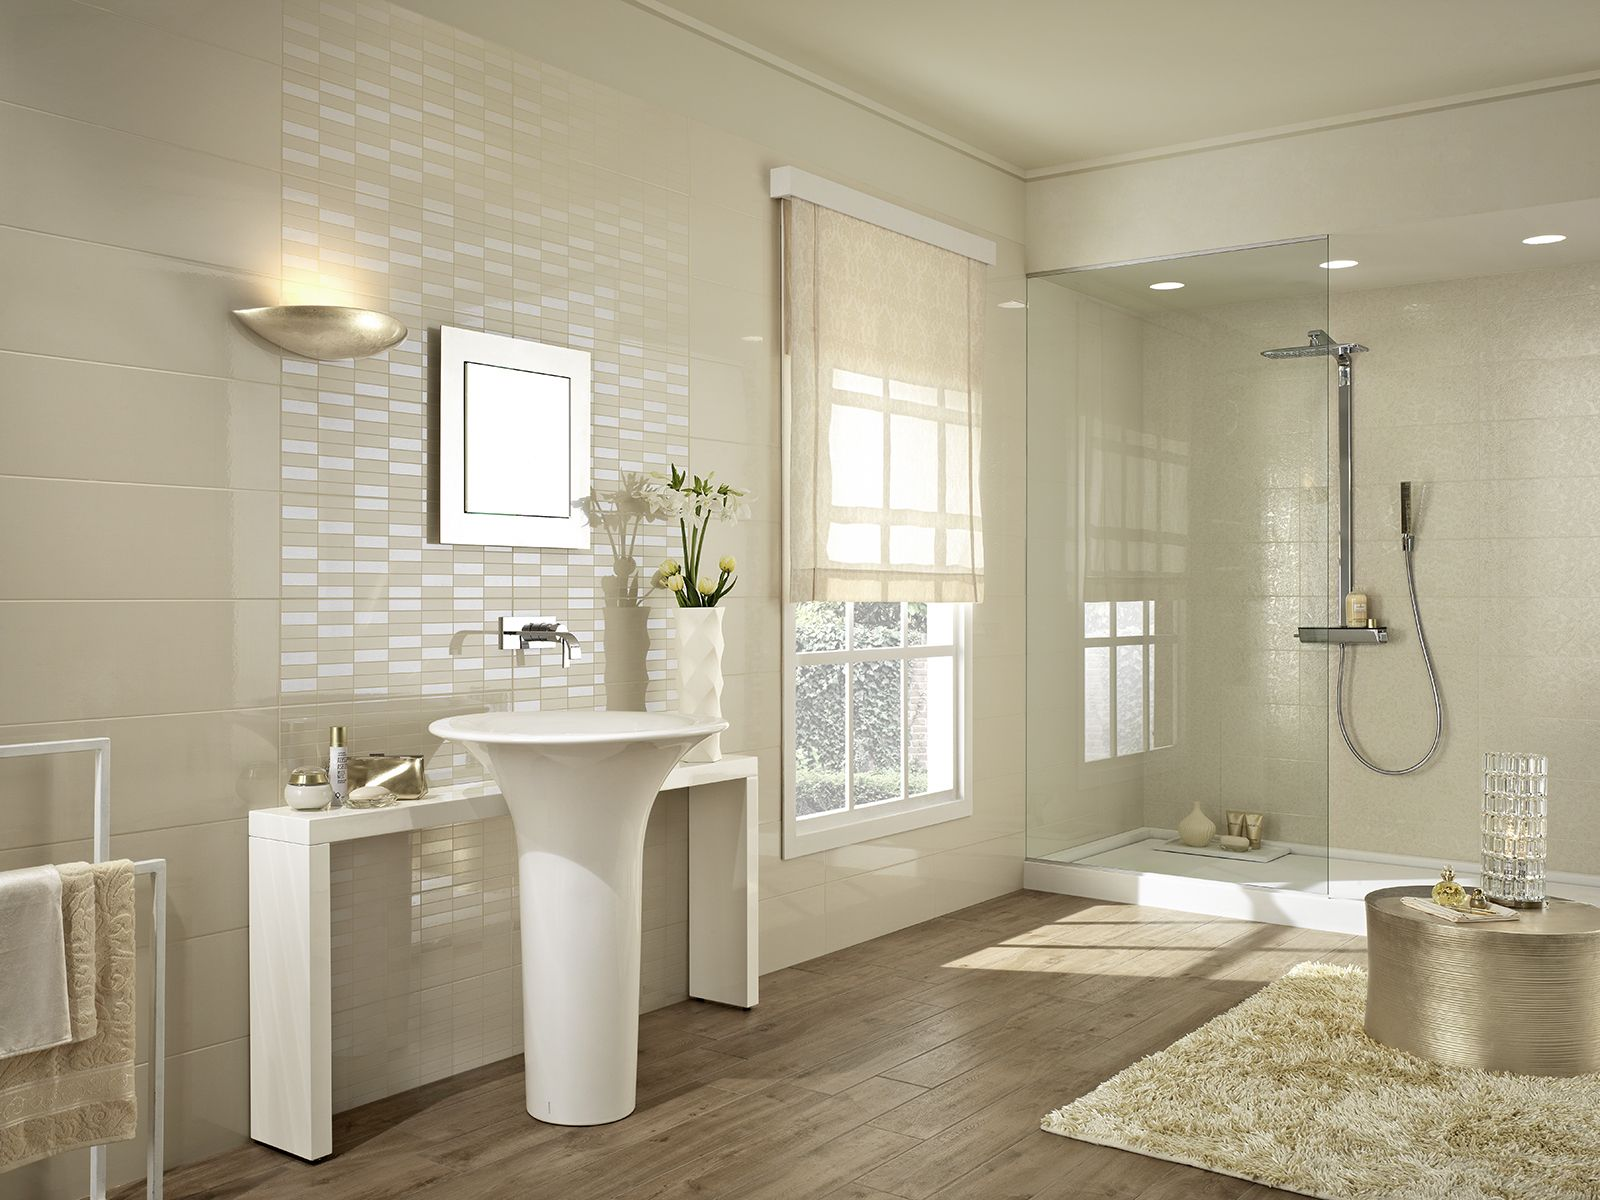 Colourline - polished tiles for bathroom wall coverings | Marazzi ...